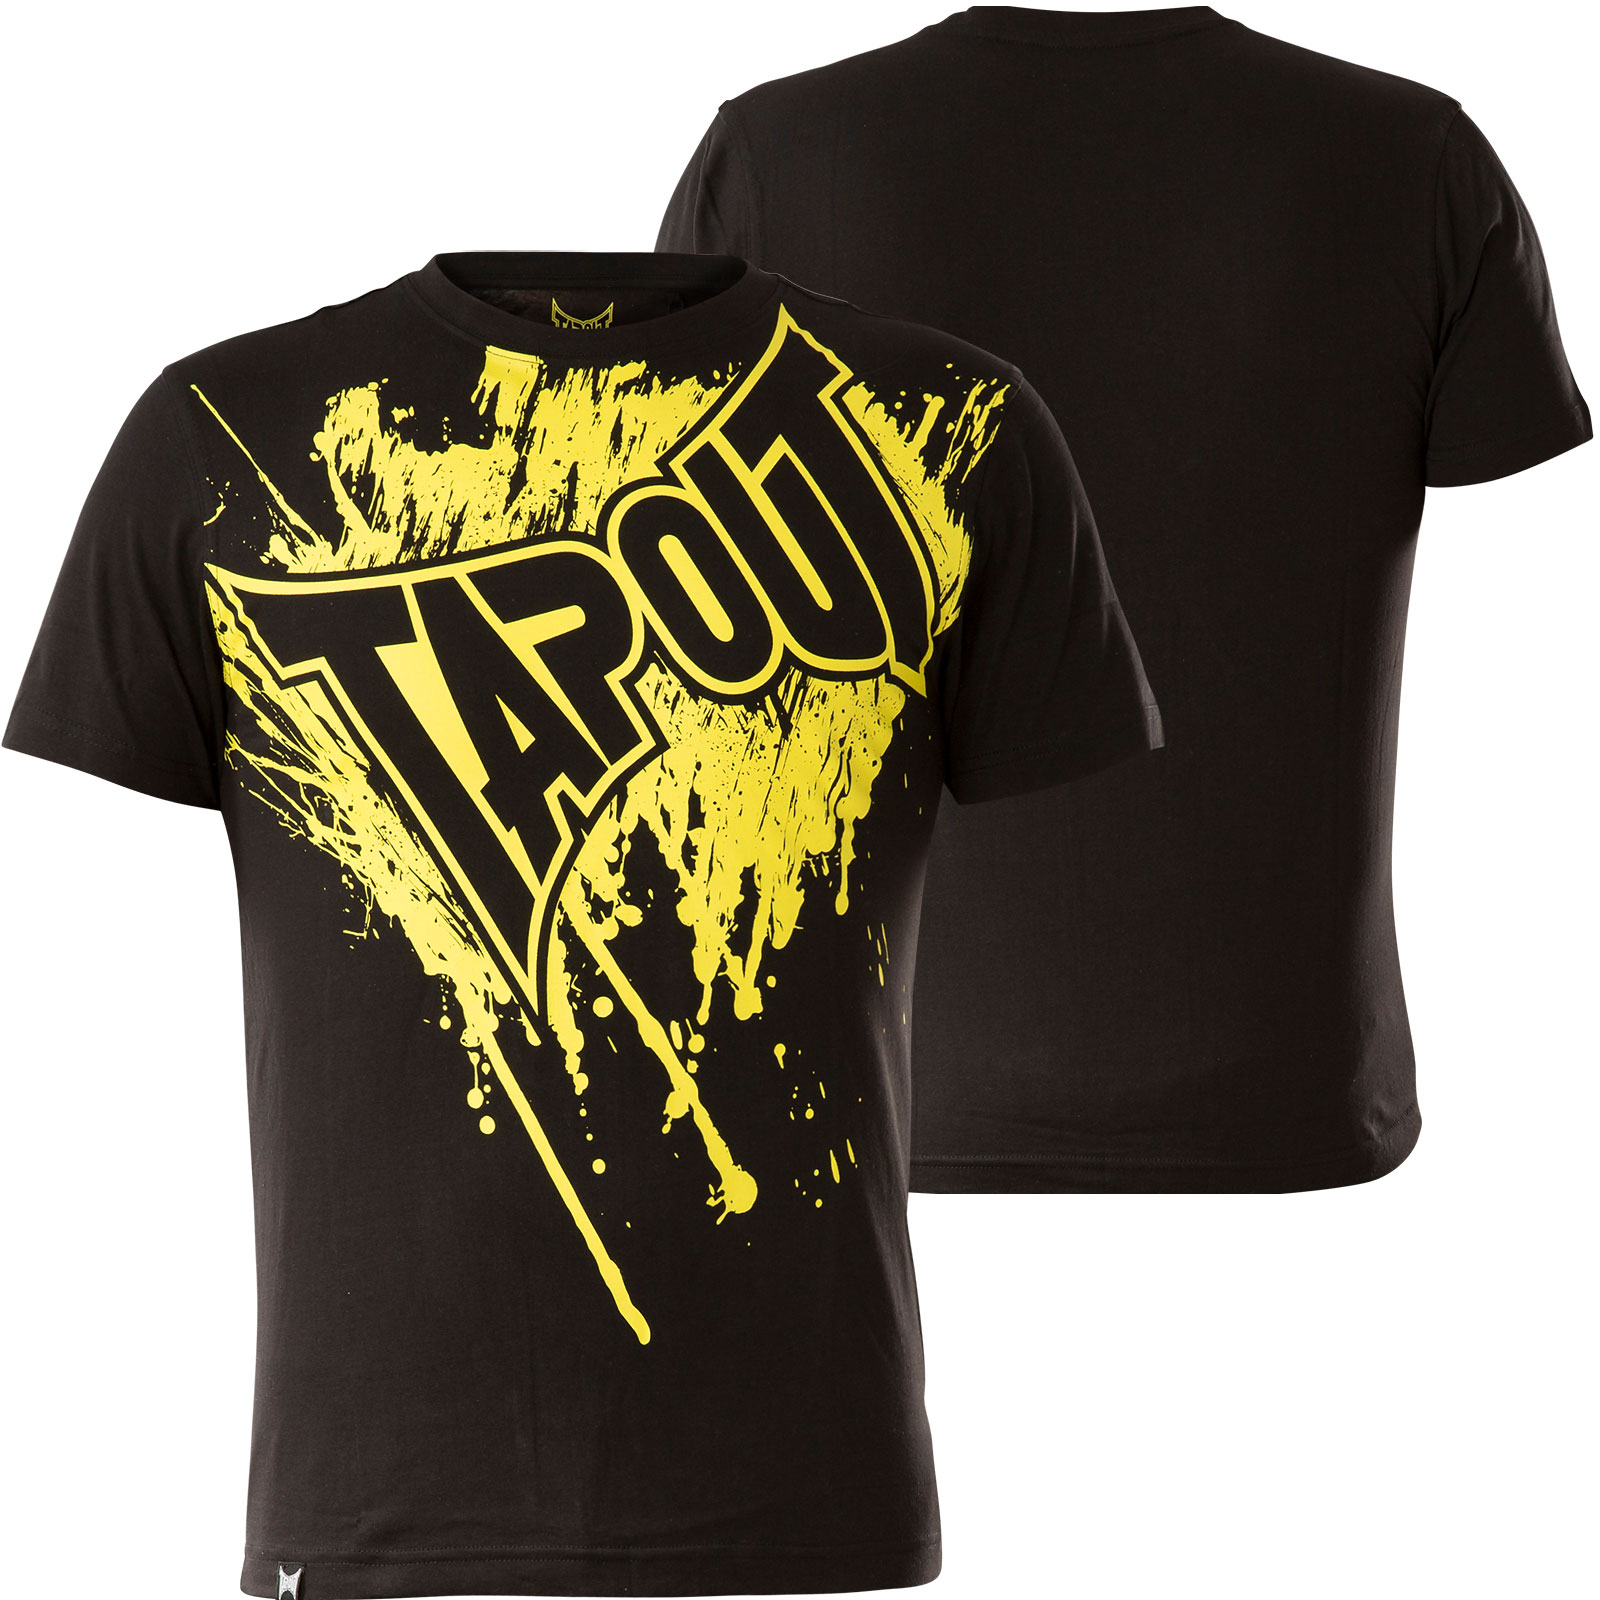 Tapout T-Shirt Logo Large print and lettering